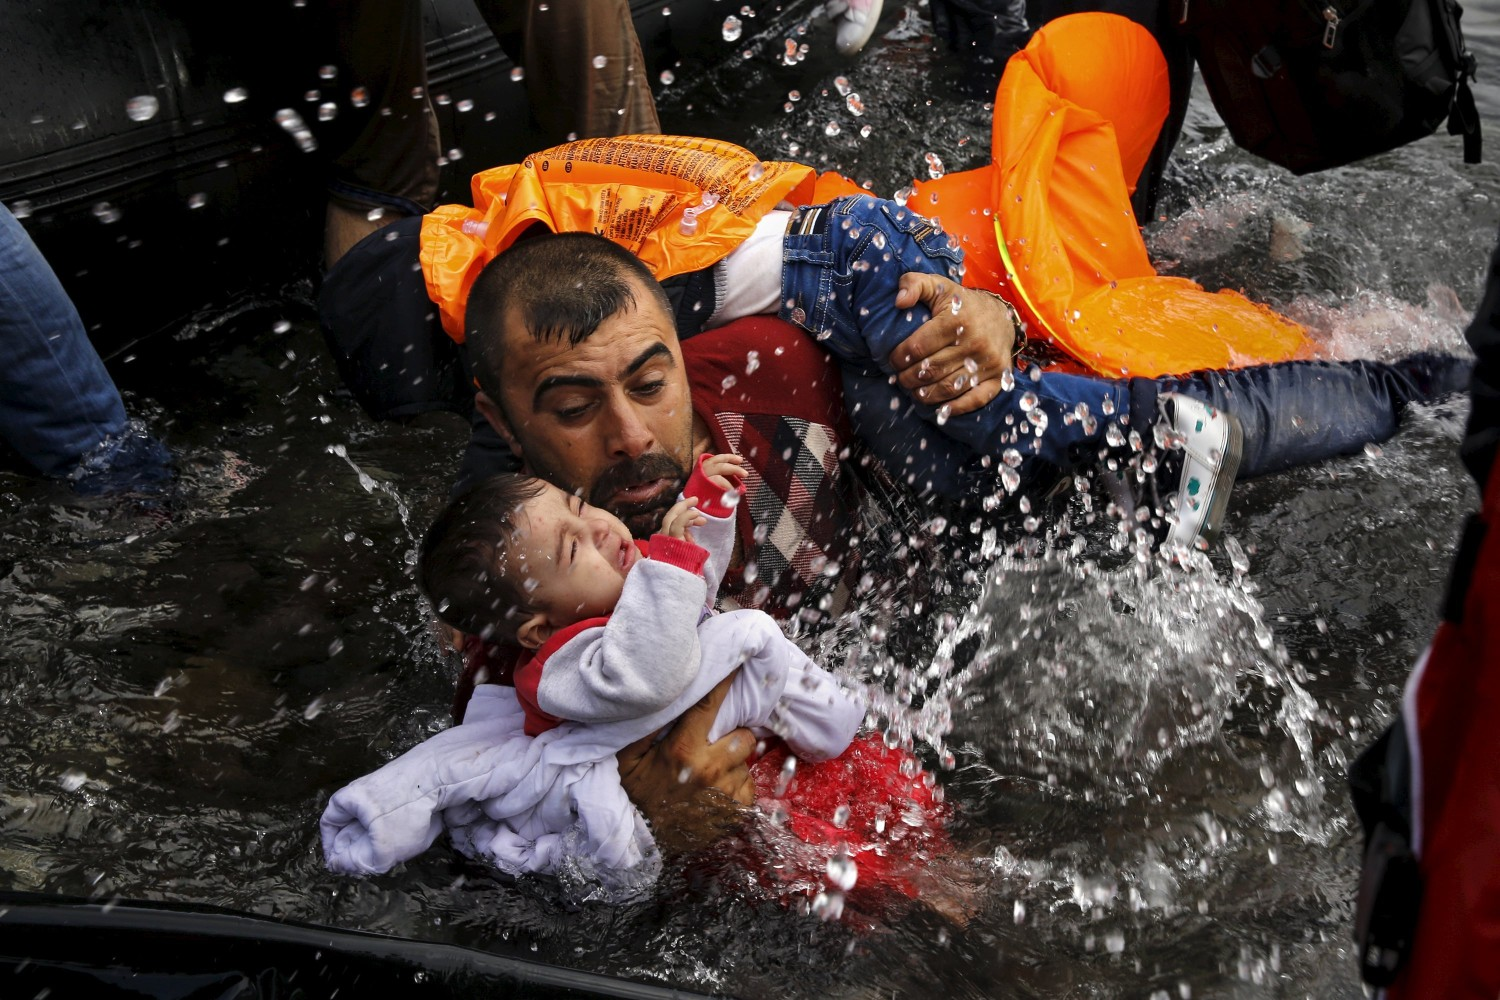 A look into the refugee crisis